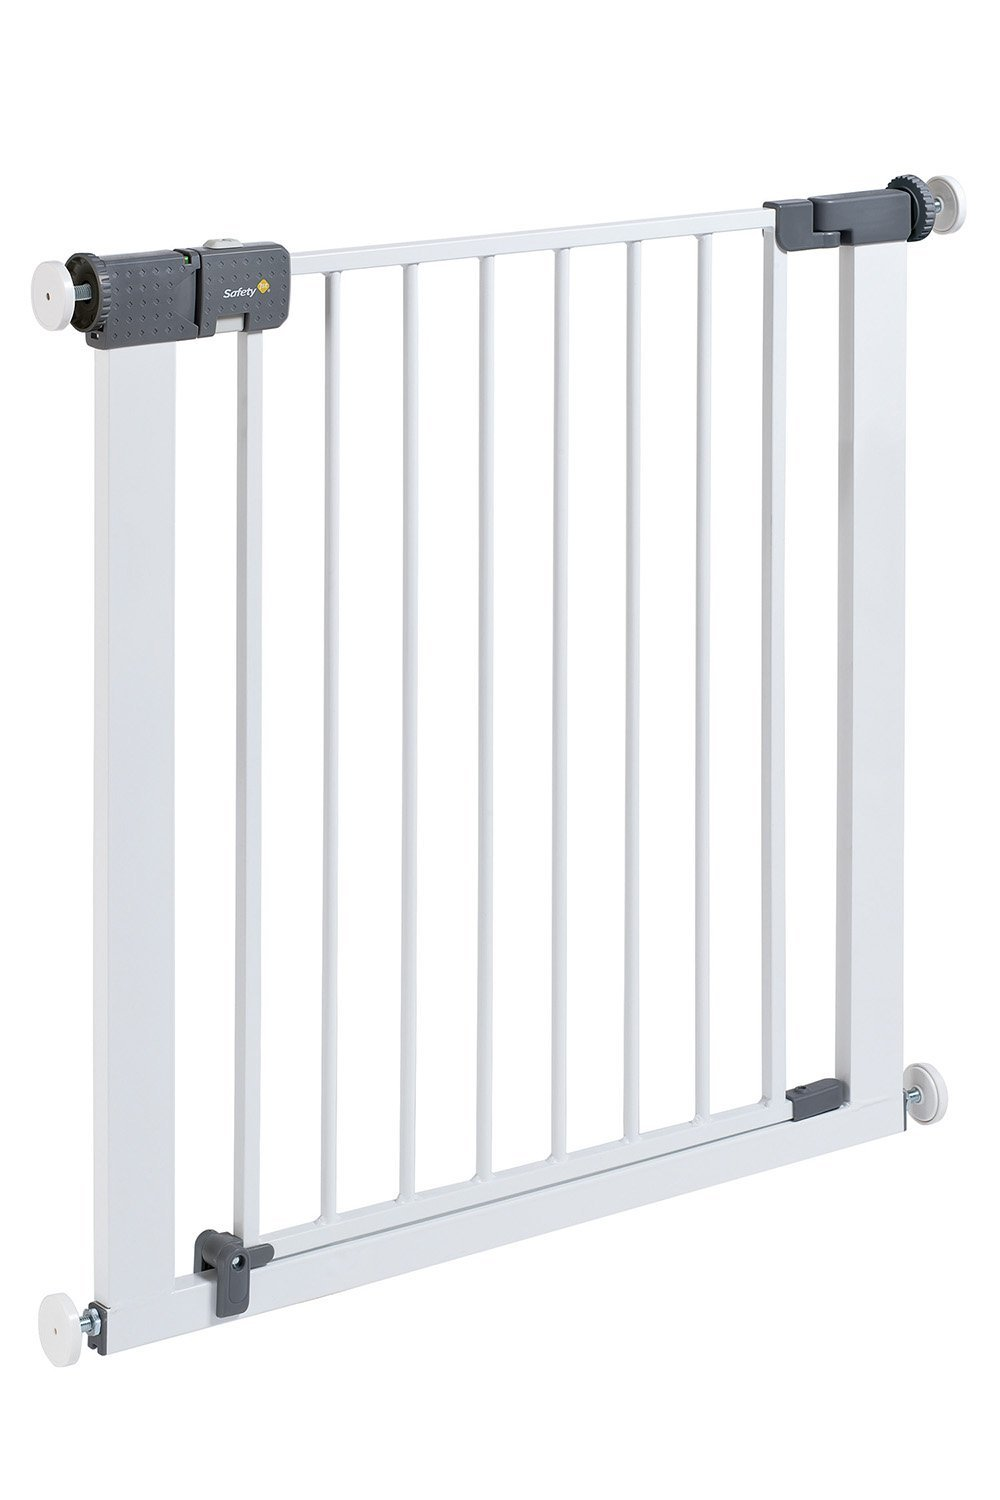 Safety 1st Quick Close ST Extra Secure Metal Child Safety Gate Stair Gate Extension Can be Extended Up to 136cm for Clamping White 73-80cm (from 6-24Months) Safety 1st High quality stair gate made of metal, is suitable for children between approx. 6up to 24months. Extra secure: with SecurTech system, and double locking system. Practical clamping–no drilling or screws required. 2